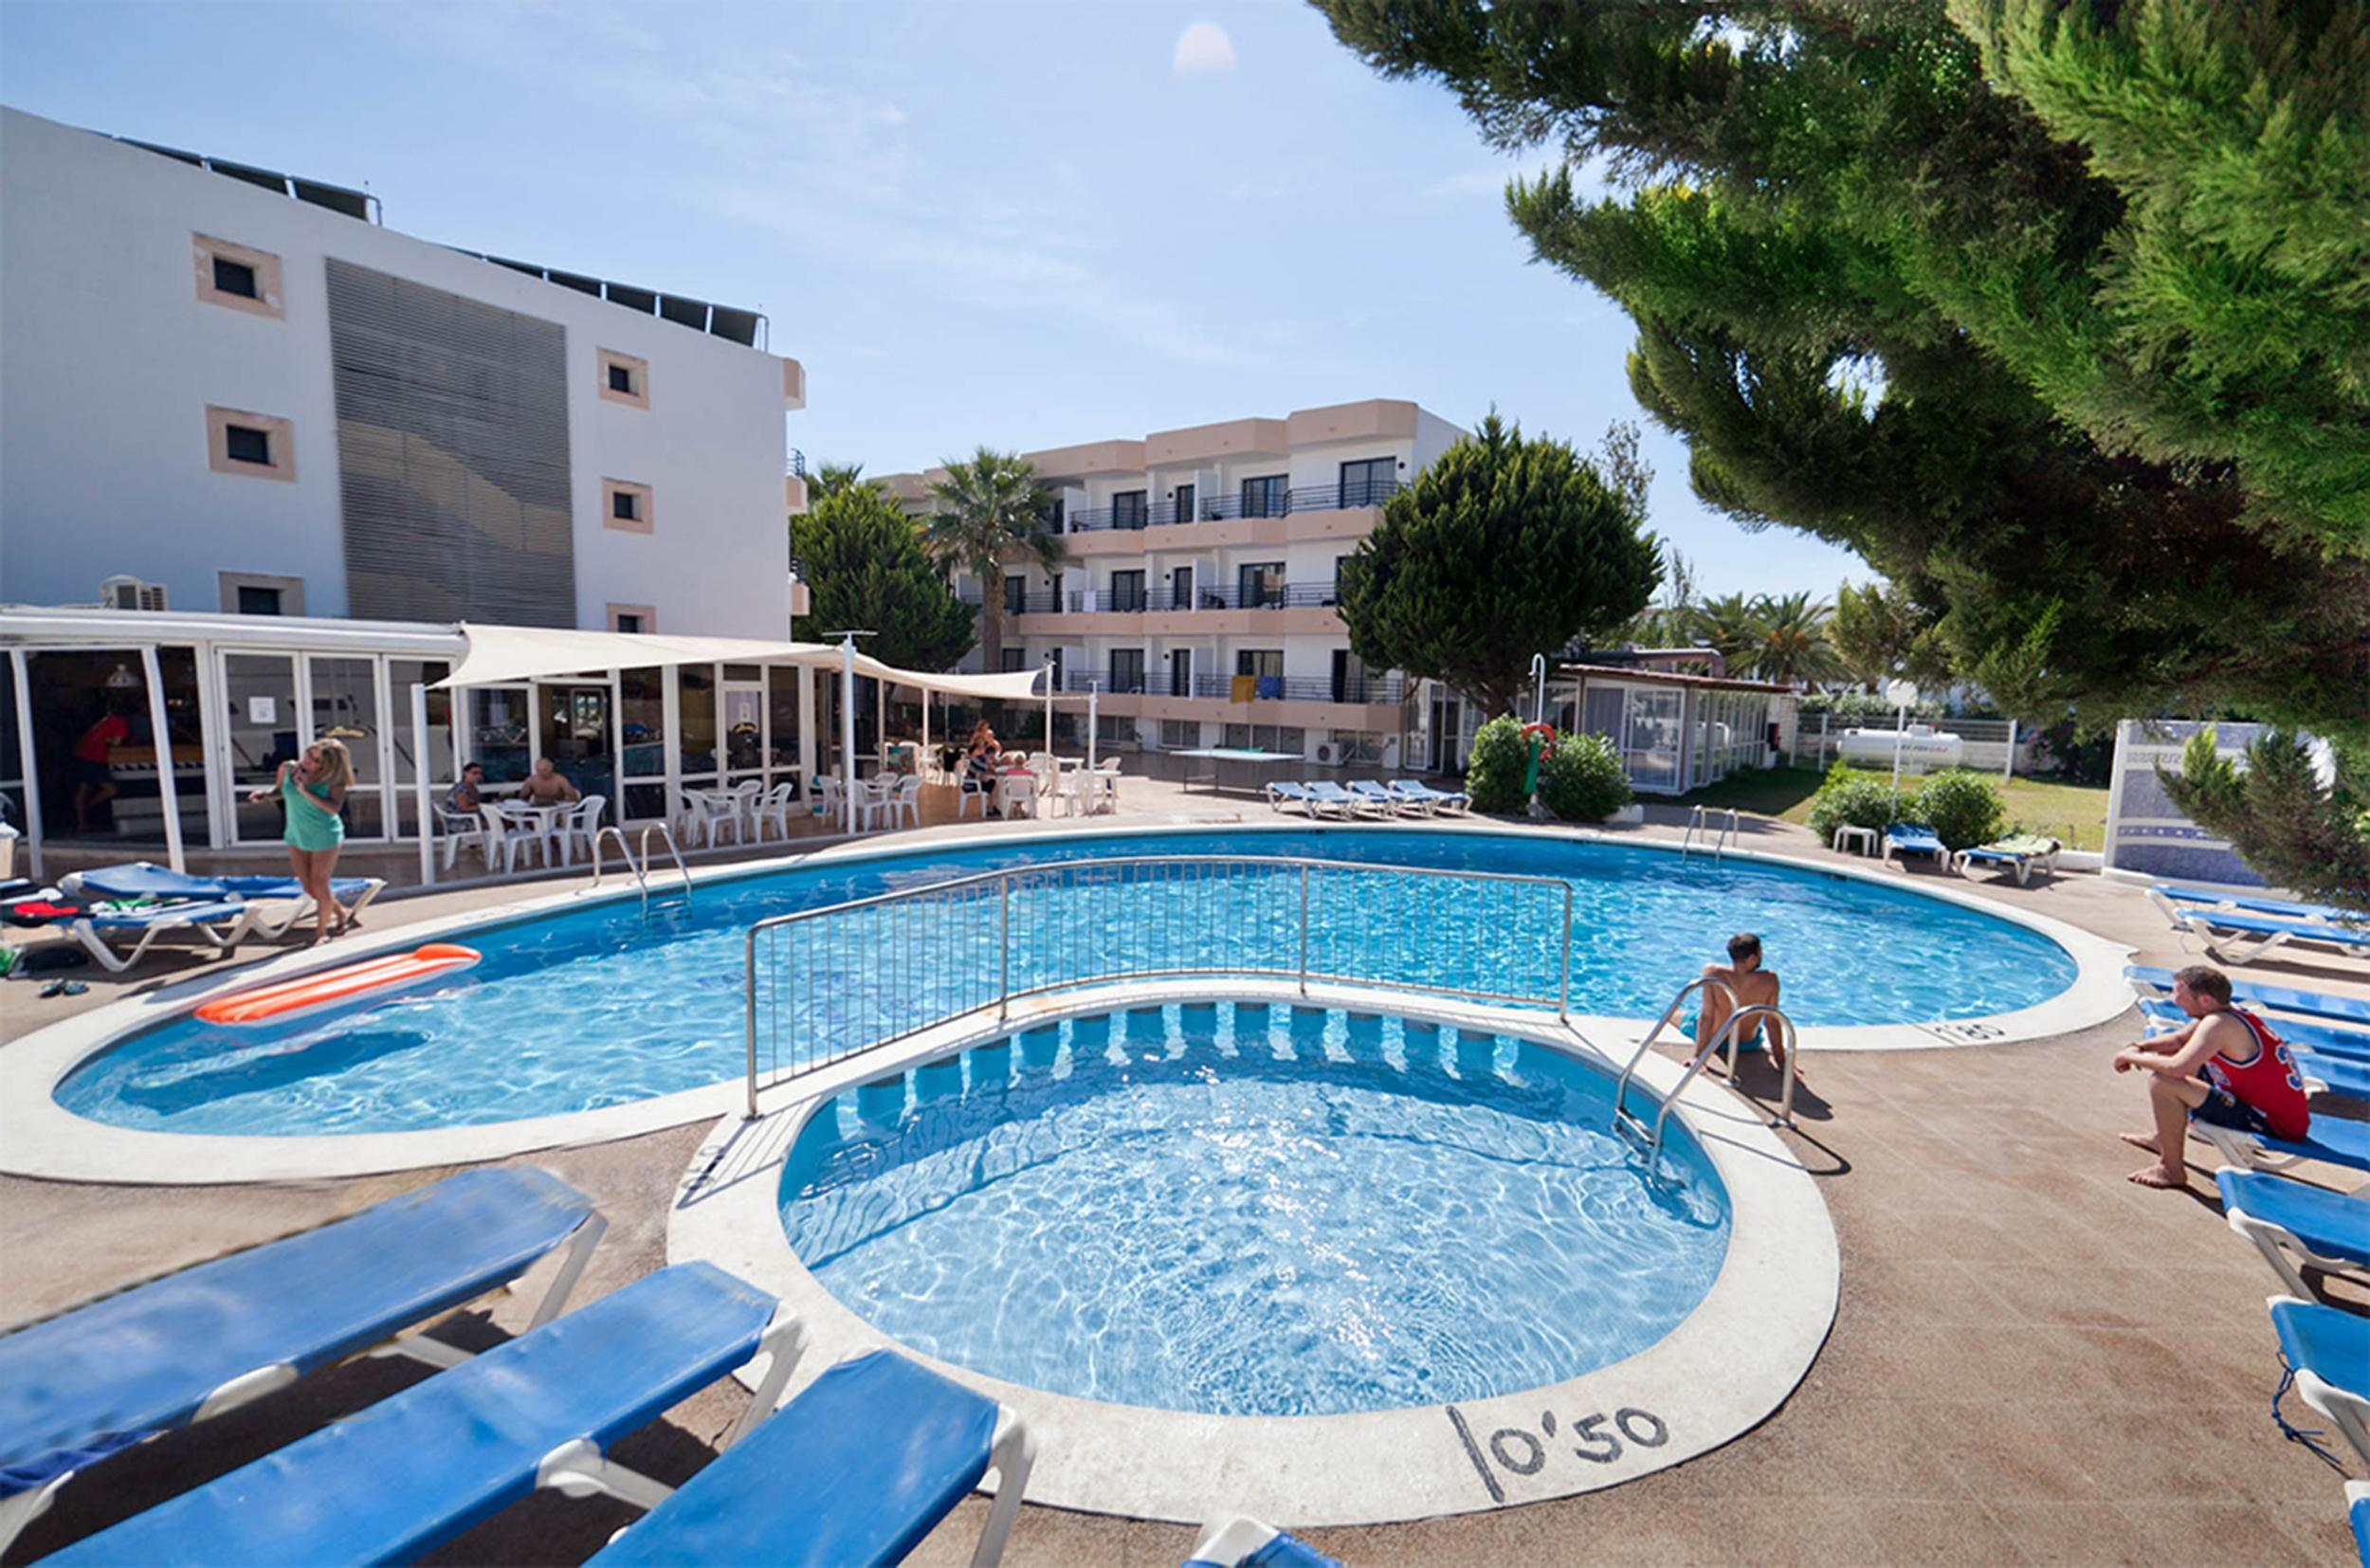 Hotel Club la Noria in Playa d'en Bossa, Ibiza, Balearic Islands